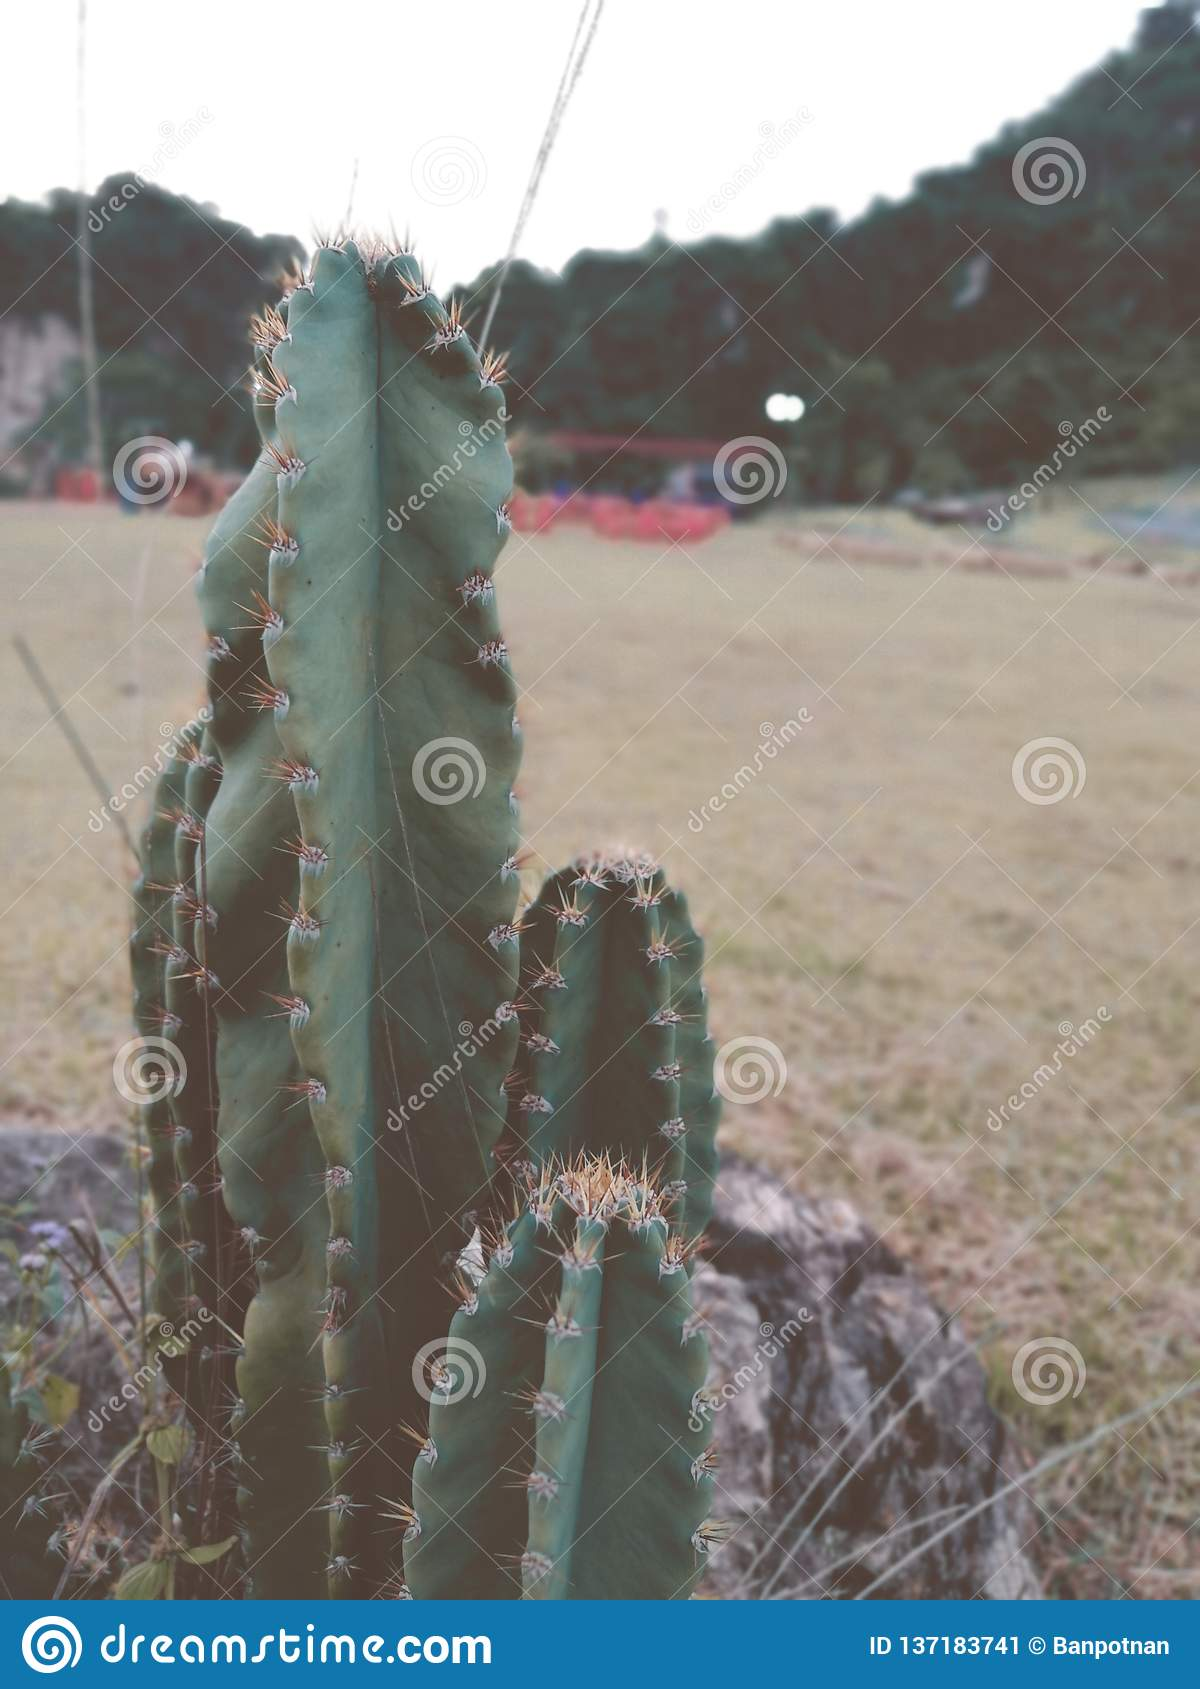 Cactus and mountains landscape